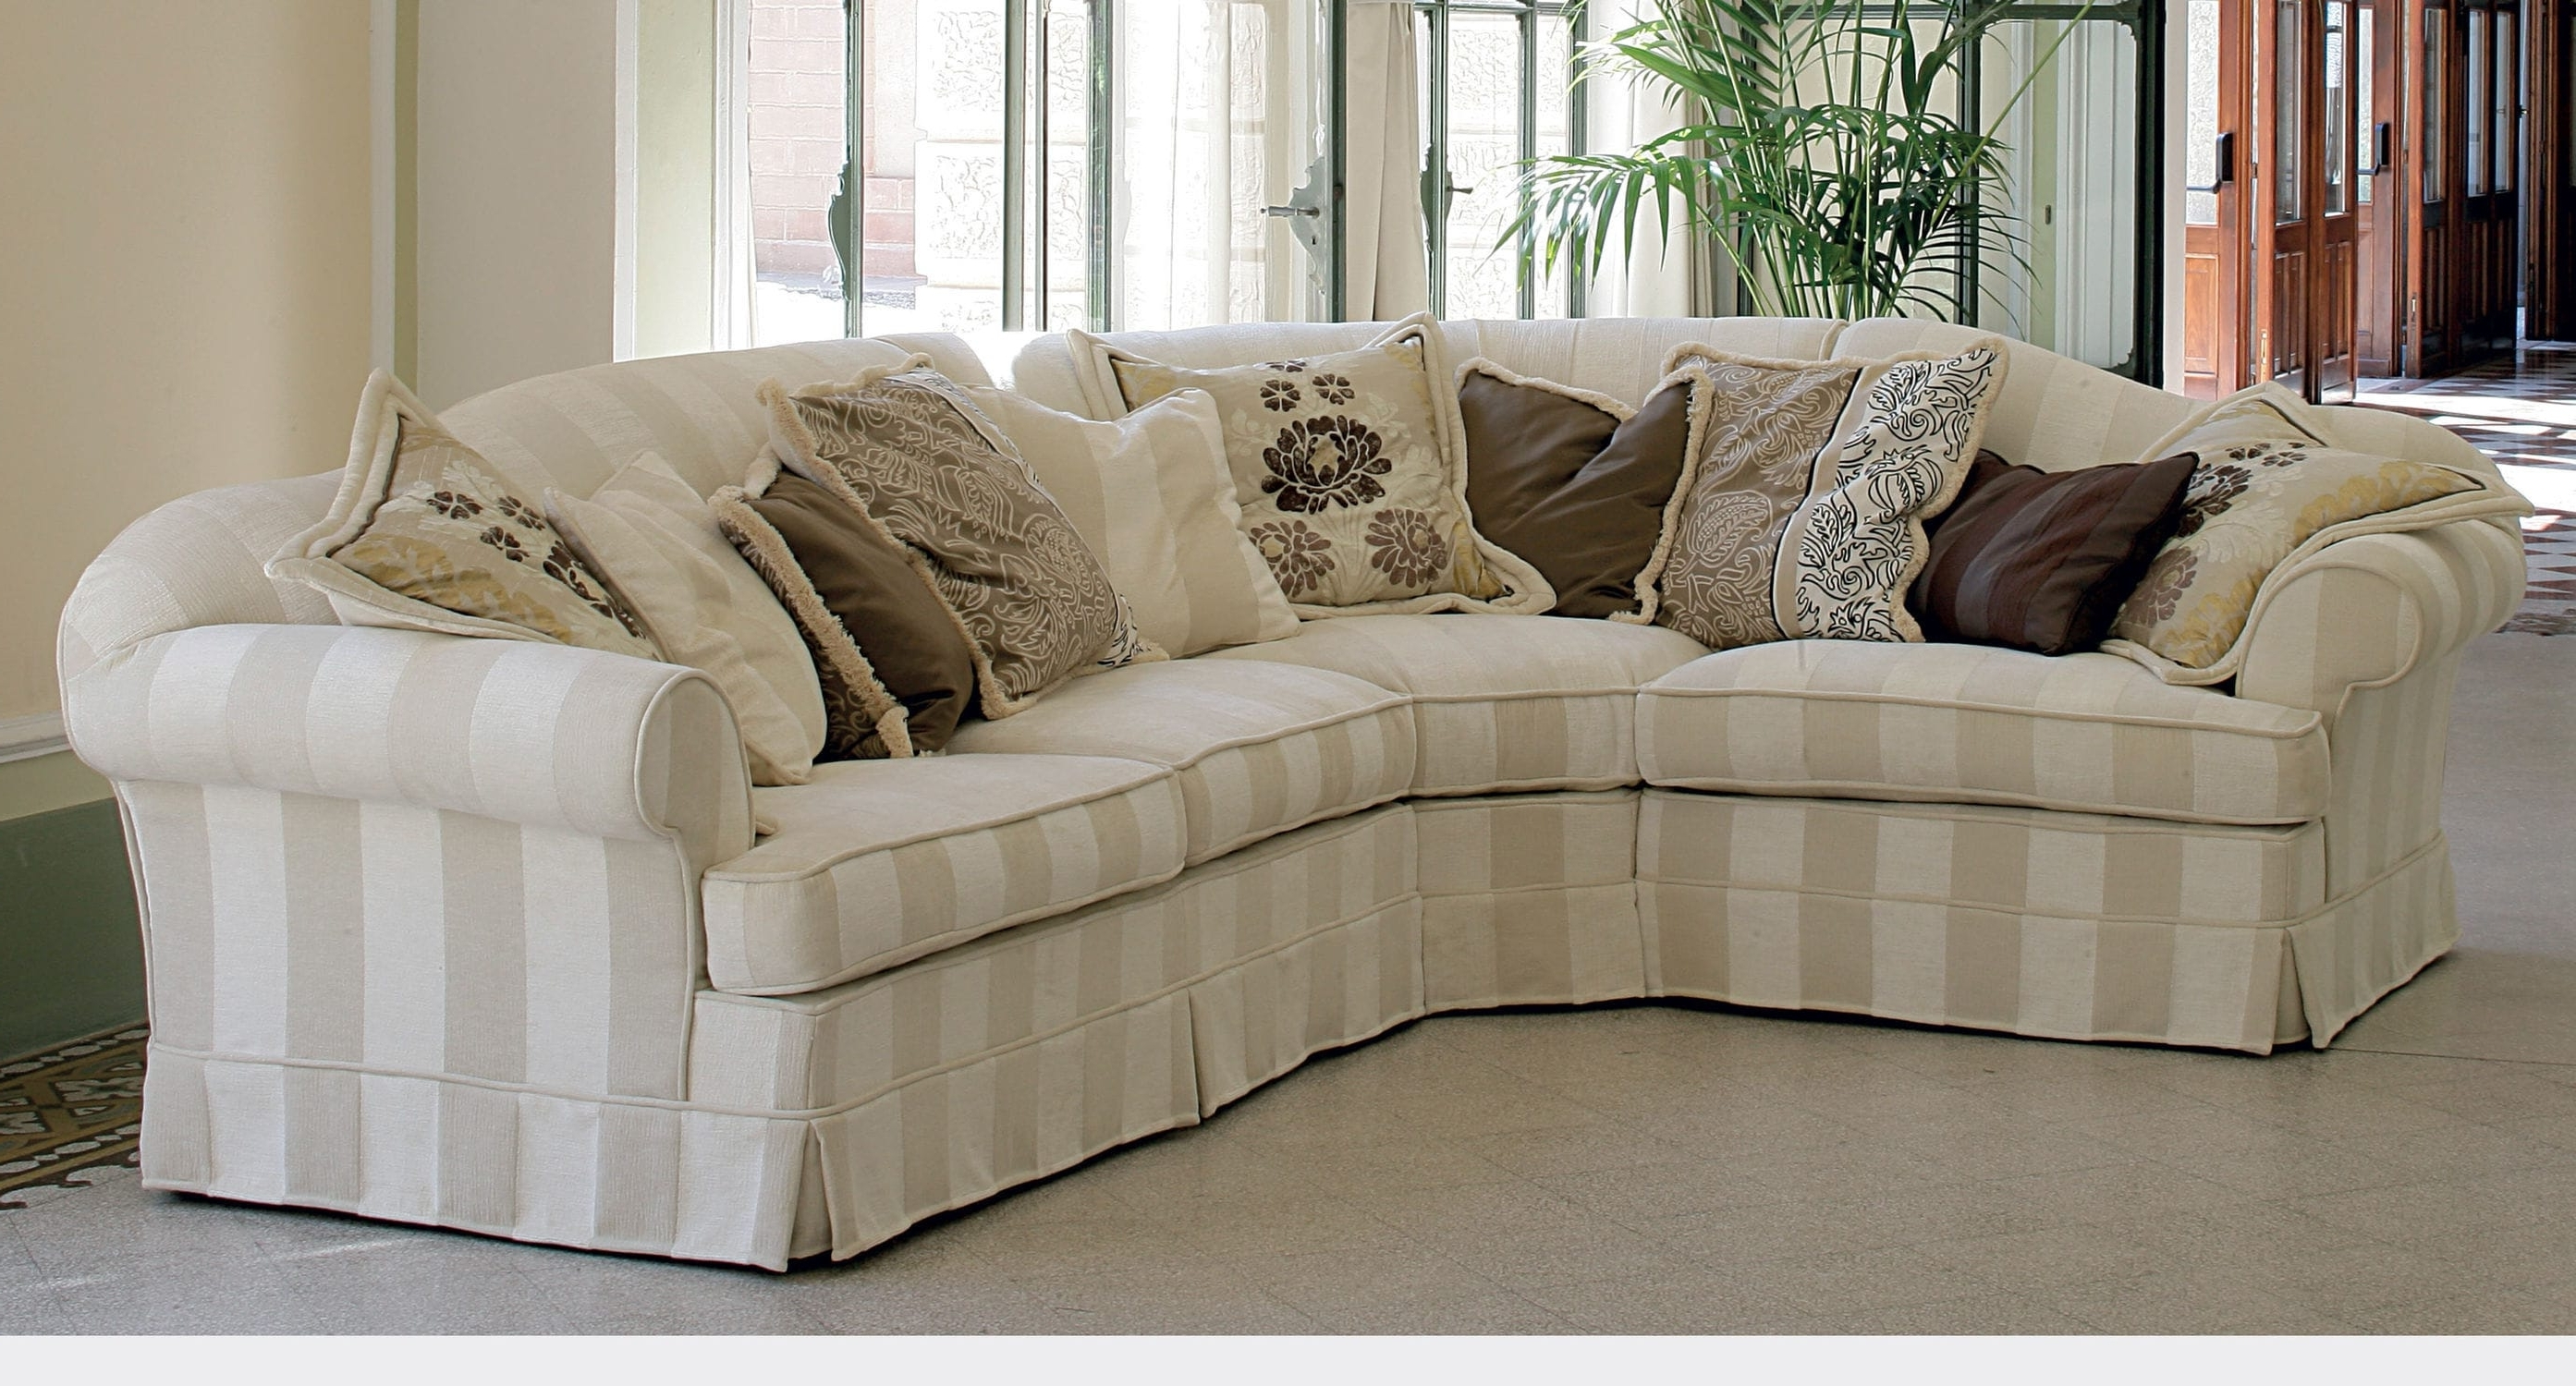 Favorite Cheap Corner Sofas Fabric Fancy Home Design For Sofas With Removable Cover (View 13 of 20)